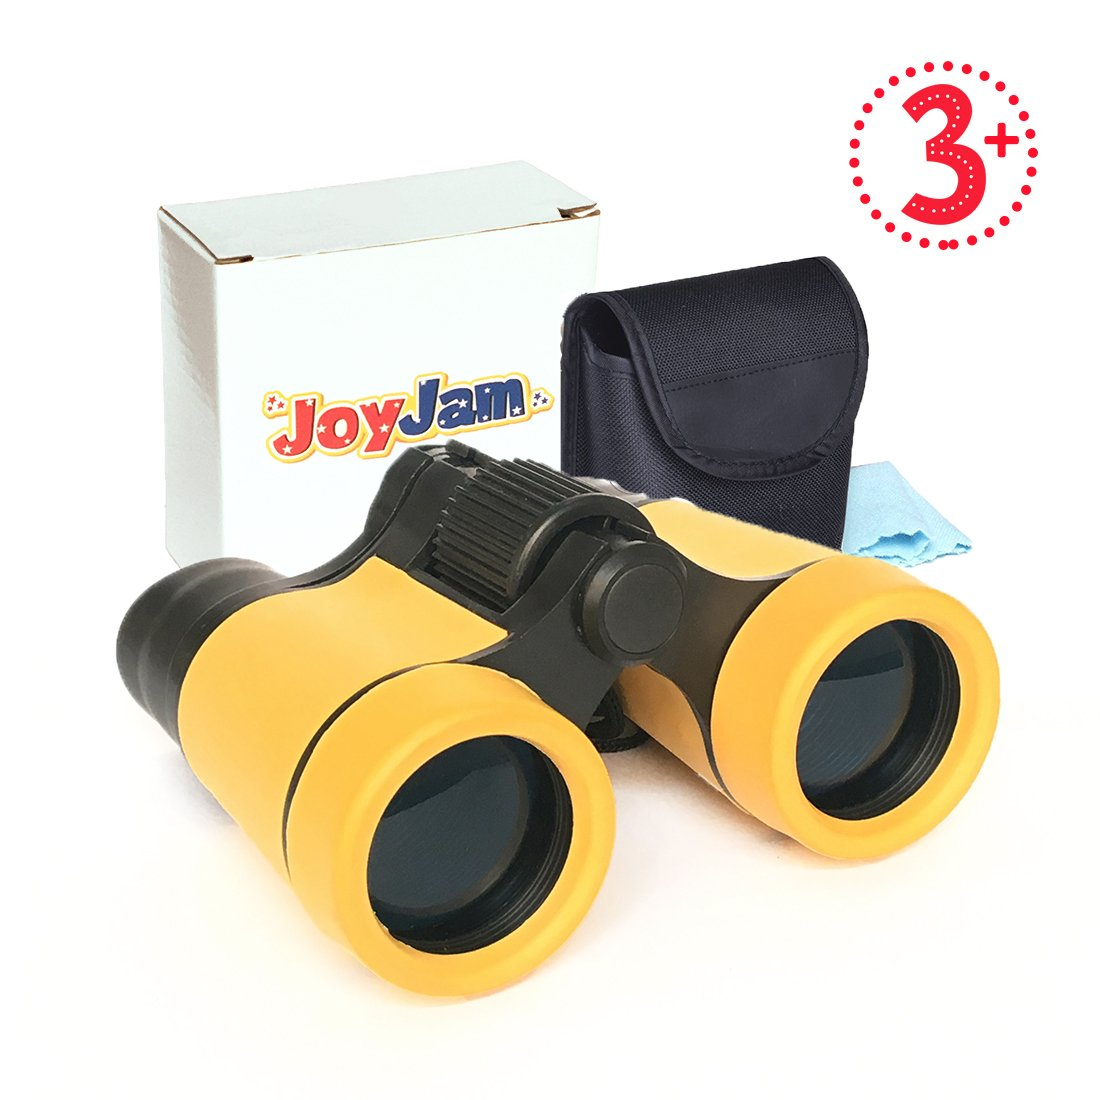 Joyjam Boys Toys 4-6 Year Old, Toy Binoculars Outdoor Toys for Kids, Gifts for 3-6 Year Old Girls (Yellow)